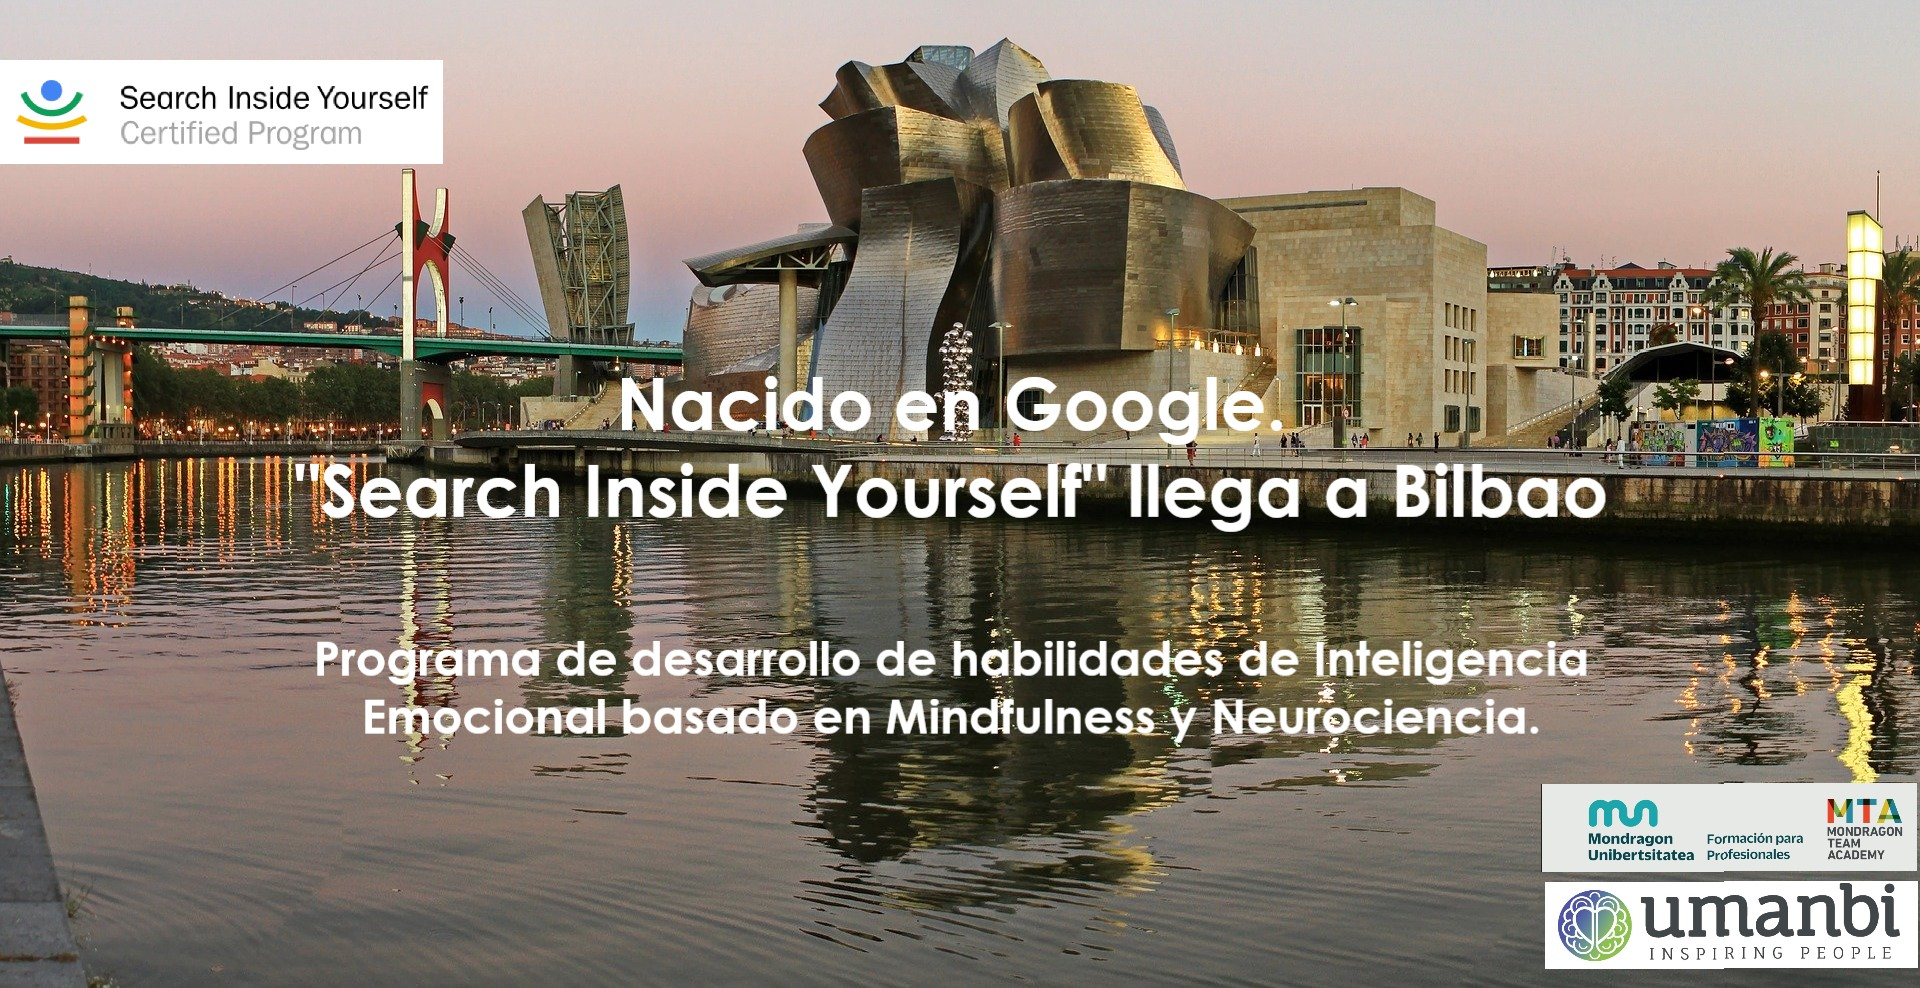 Search Inside Yourself Bilbao